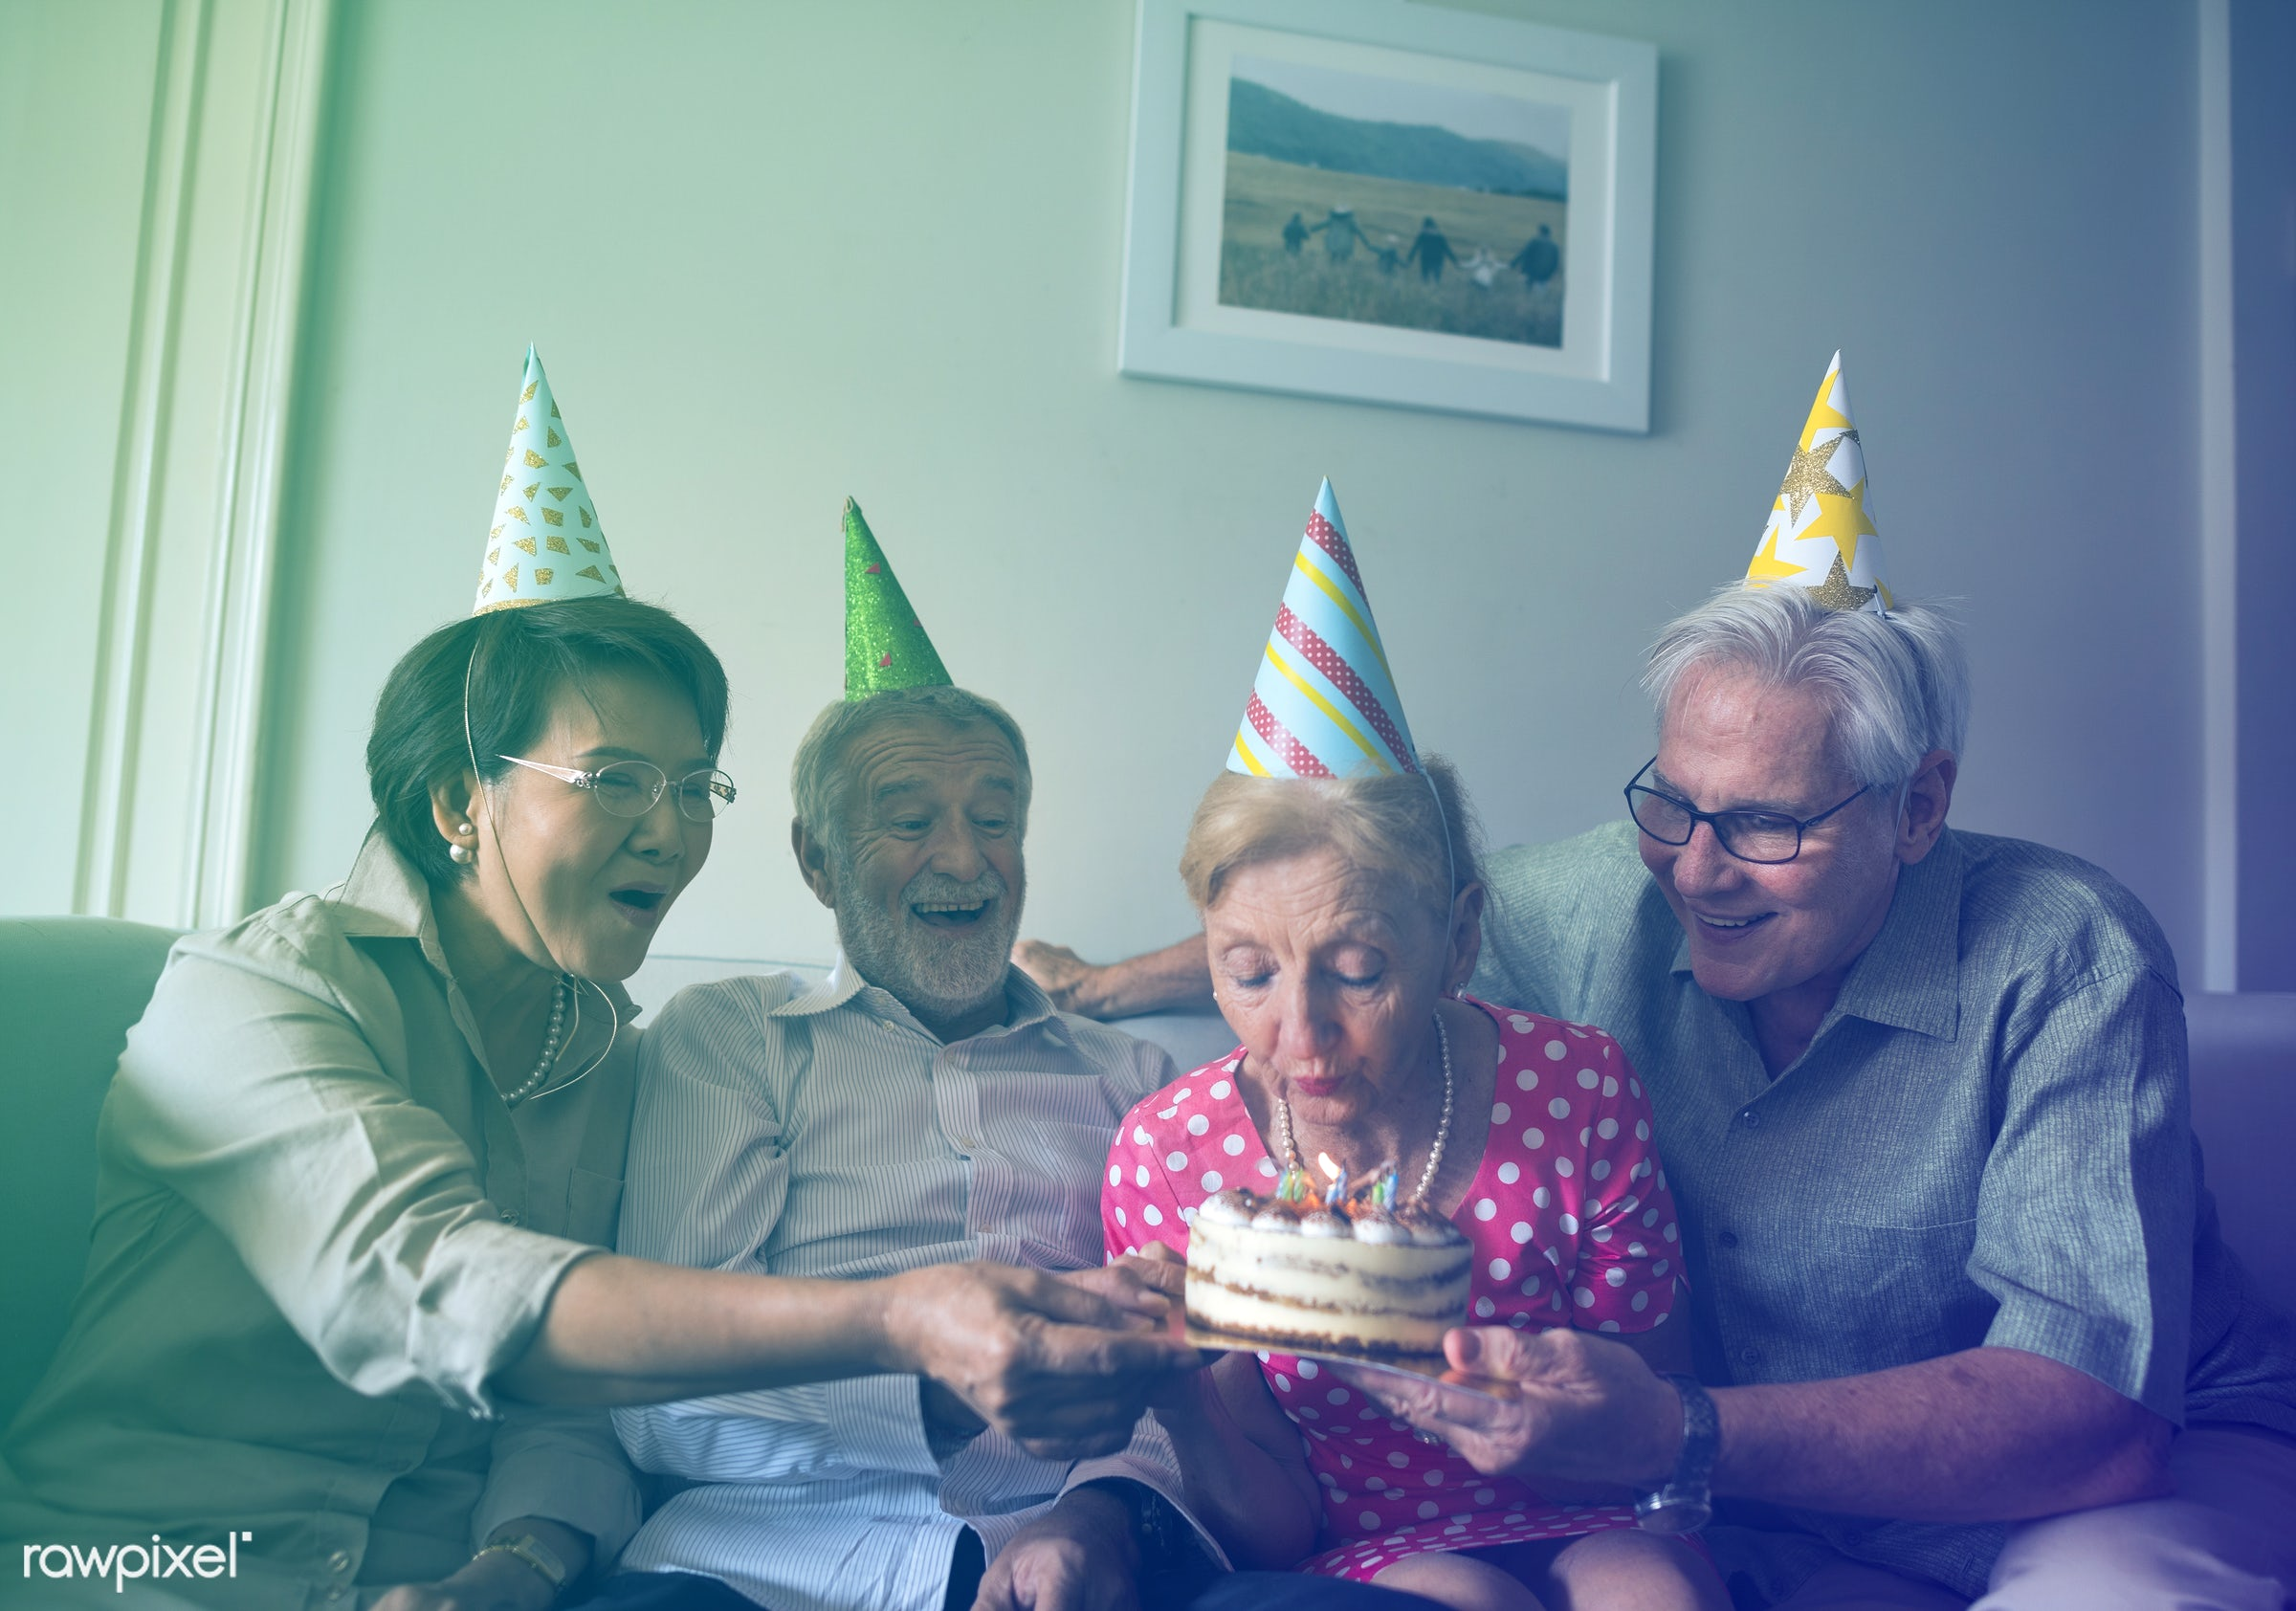 expression, person, faded, vibrant, house, people, caucasian, asian, hat, retirement, friends, blend, lifestyle, friendship...